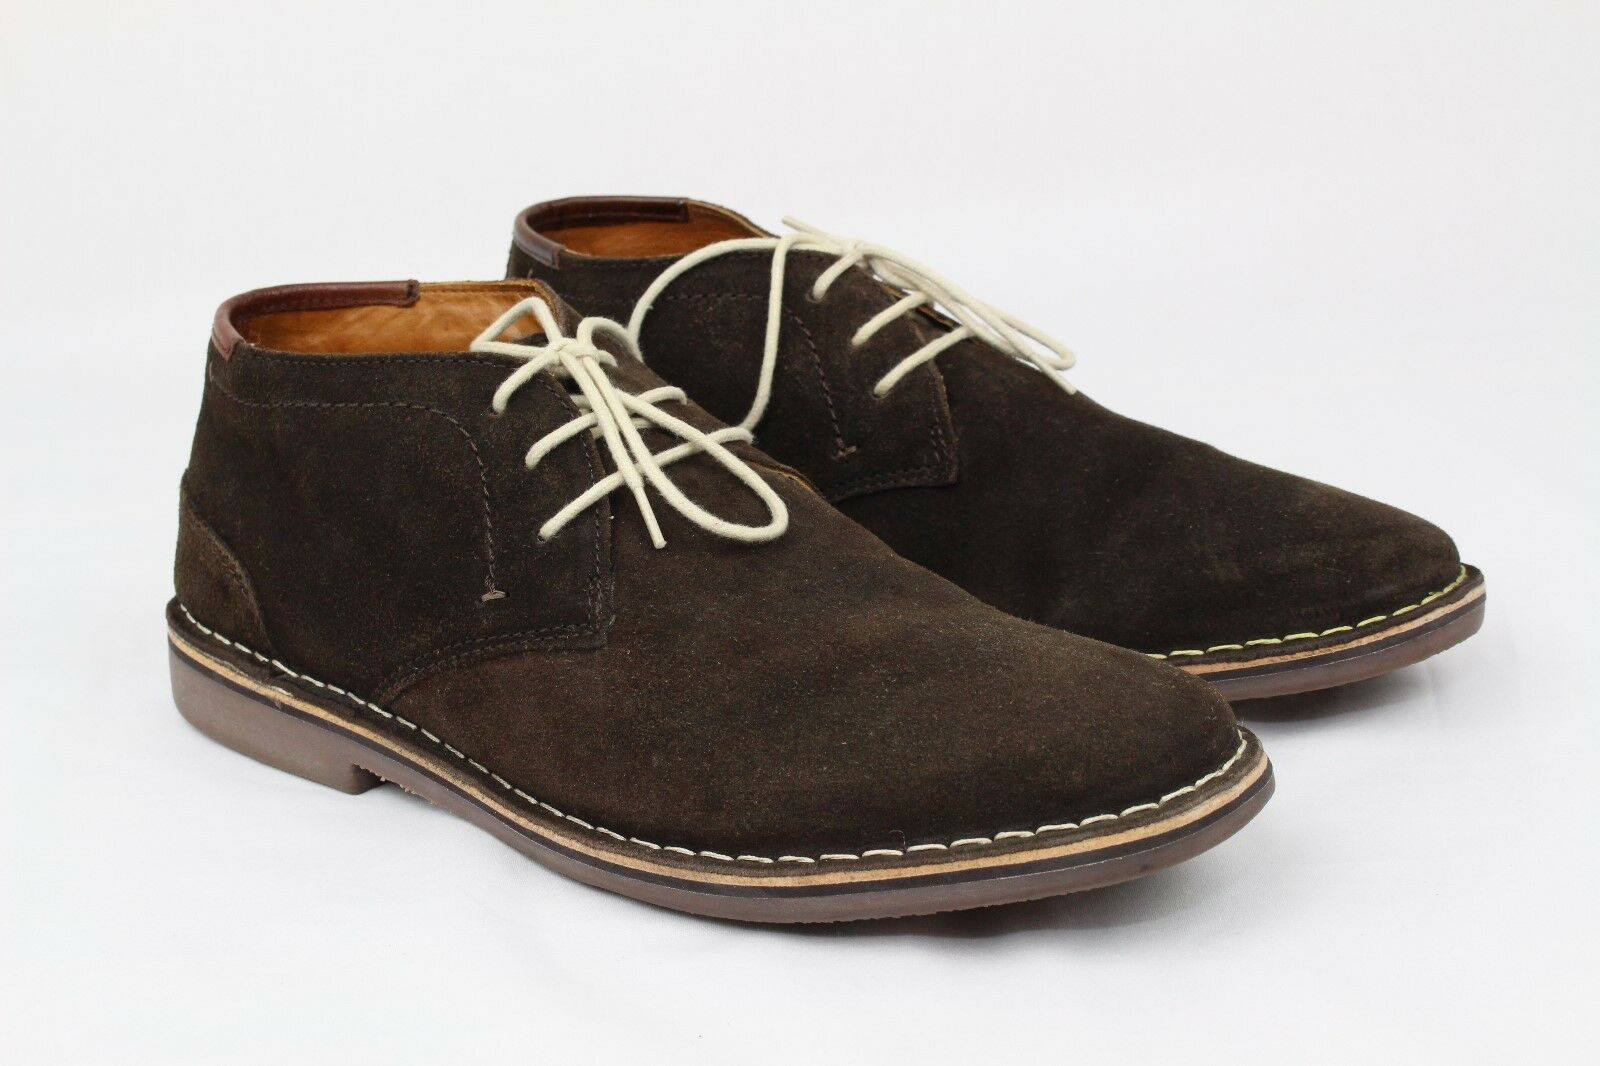 Kenneth Cole Unlisted Men's Real Deal Shoes Suede Chocolate size12 made in India